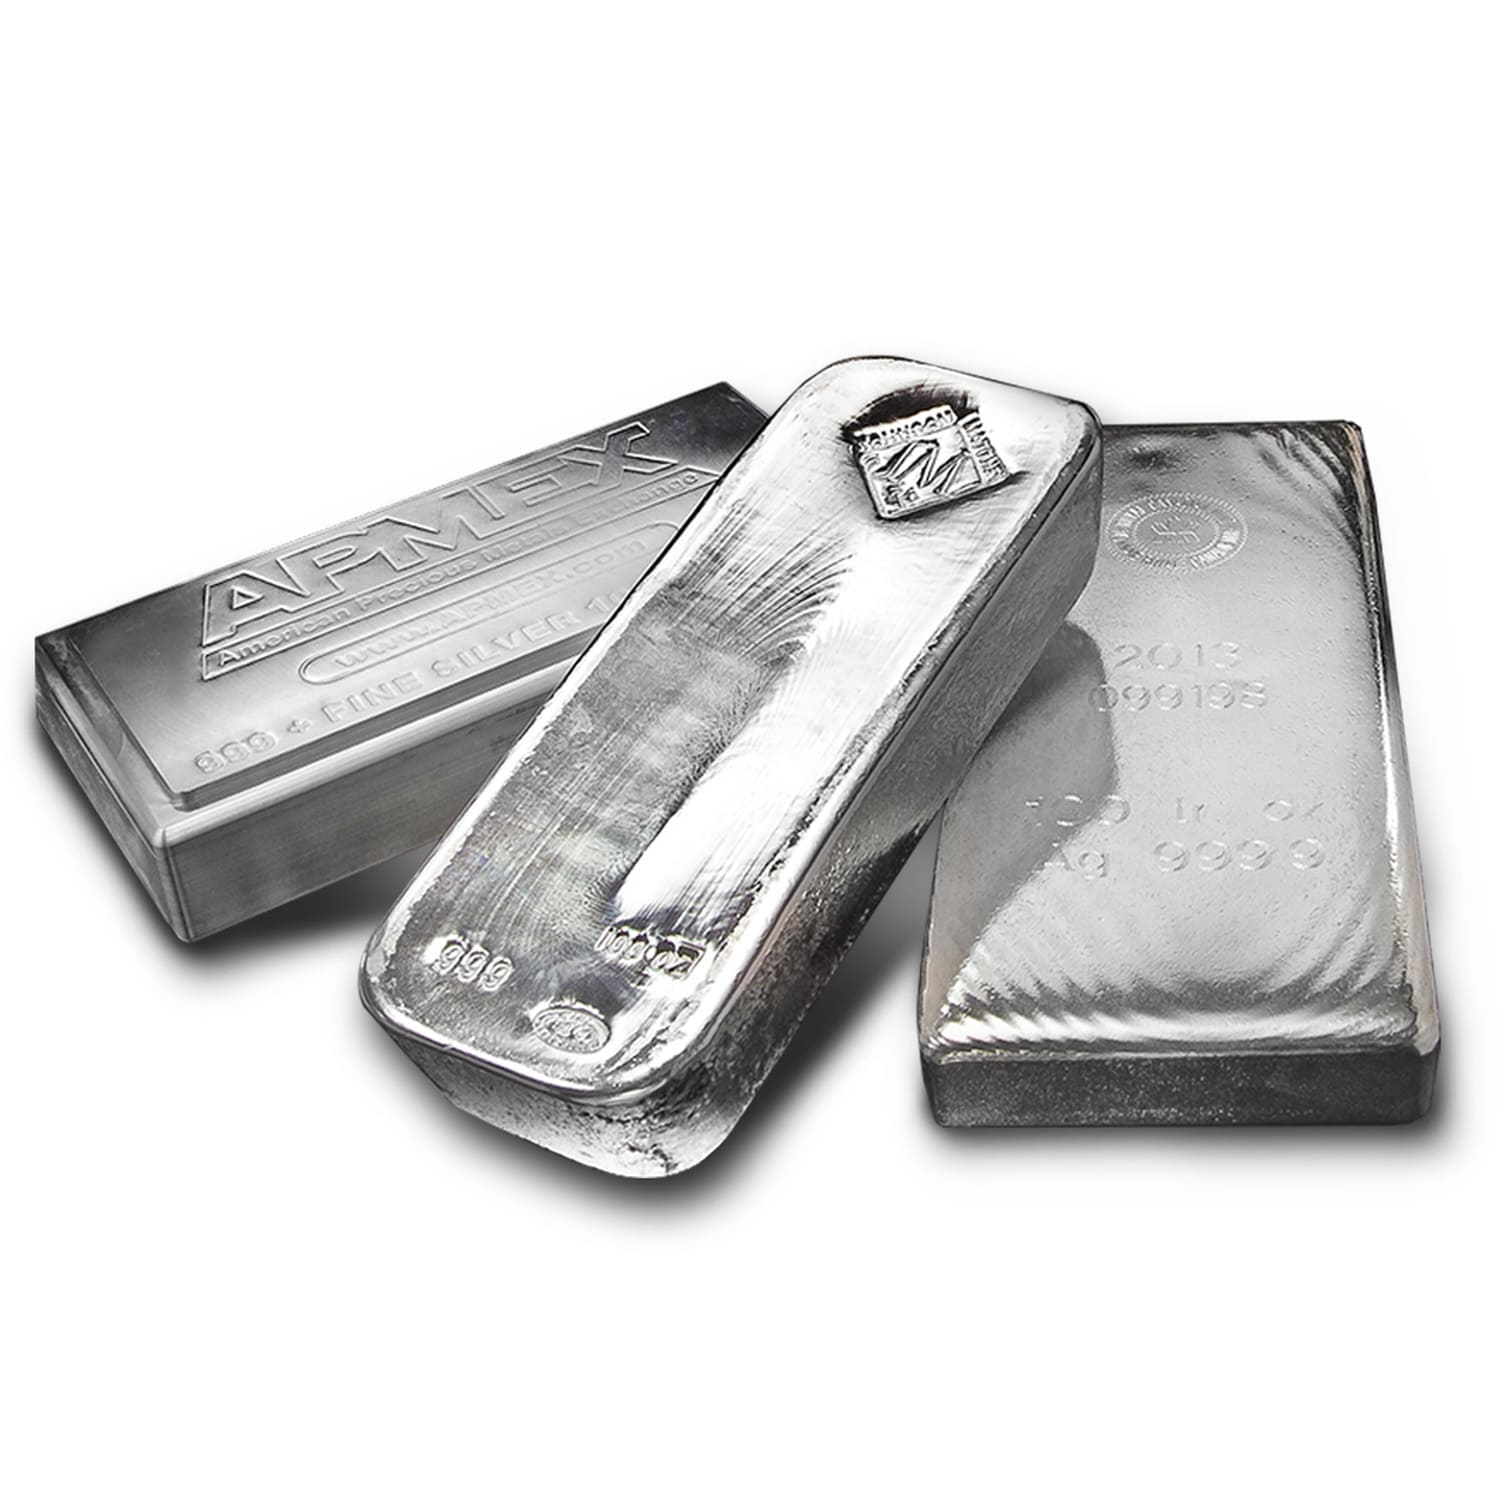 100.85 oz Silver Bars - Secondary Market